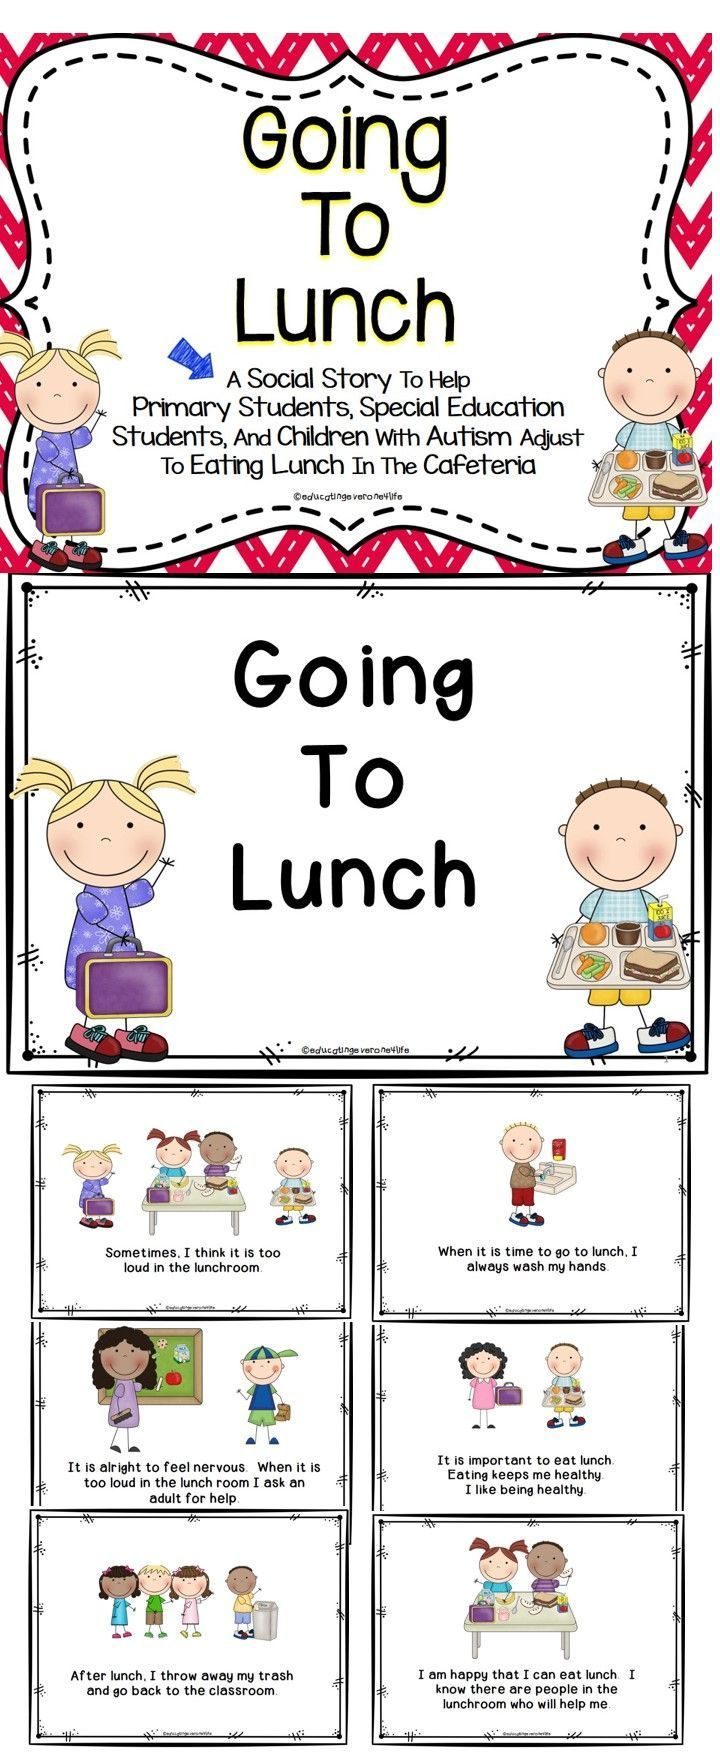 Going To Lunch Social Story | Classroom resources, Teacher ...